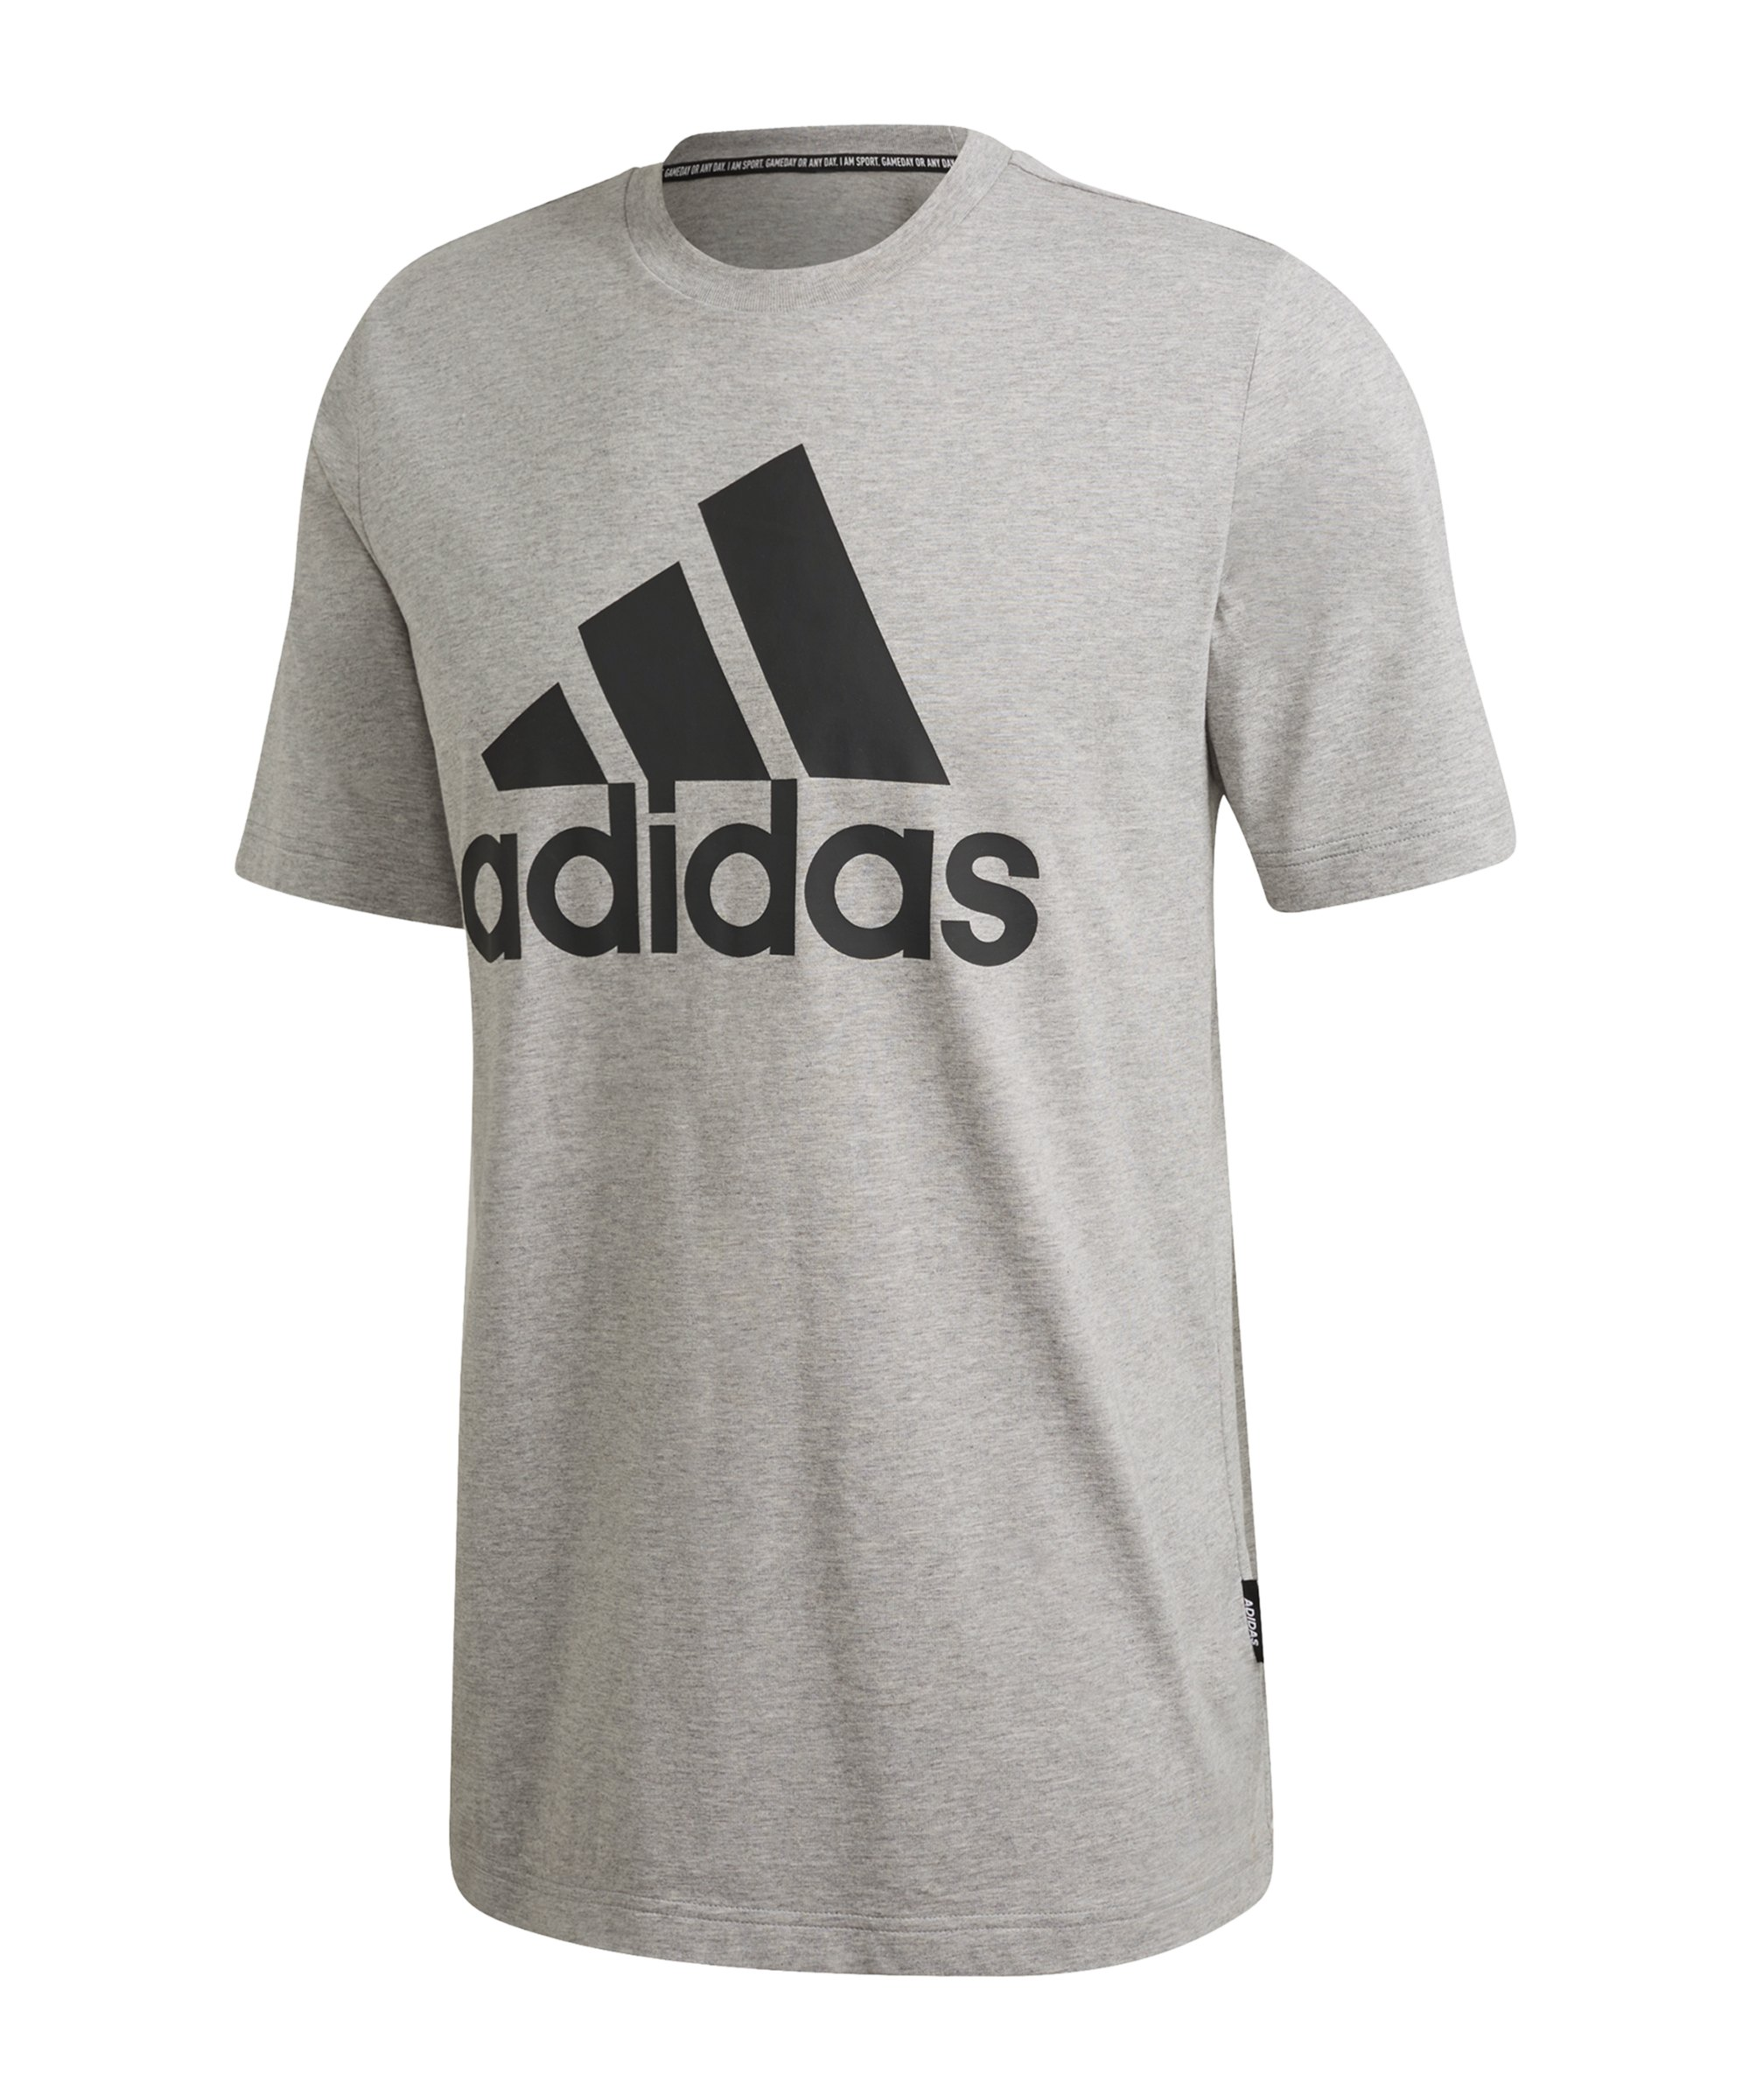 adidas Must Haves Badge of Sport T-Shirt Grau - grau